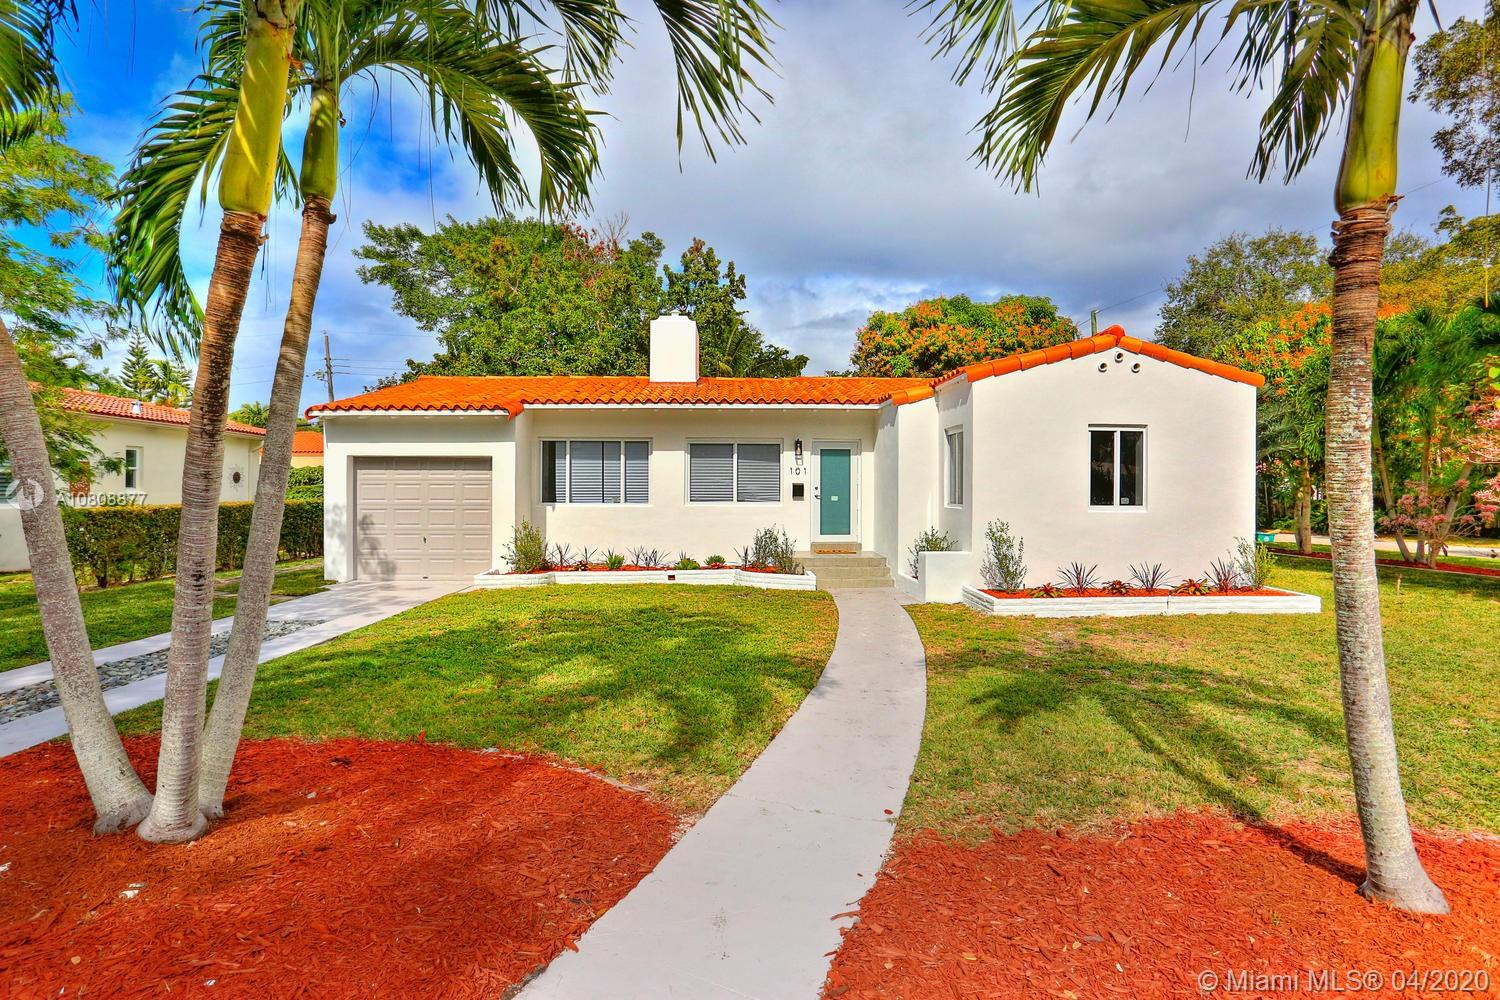 Details for 101 100th Ter, Miami Shores, FL 33150